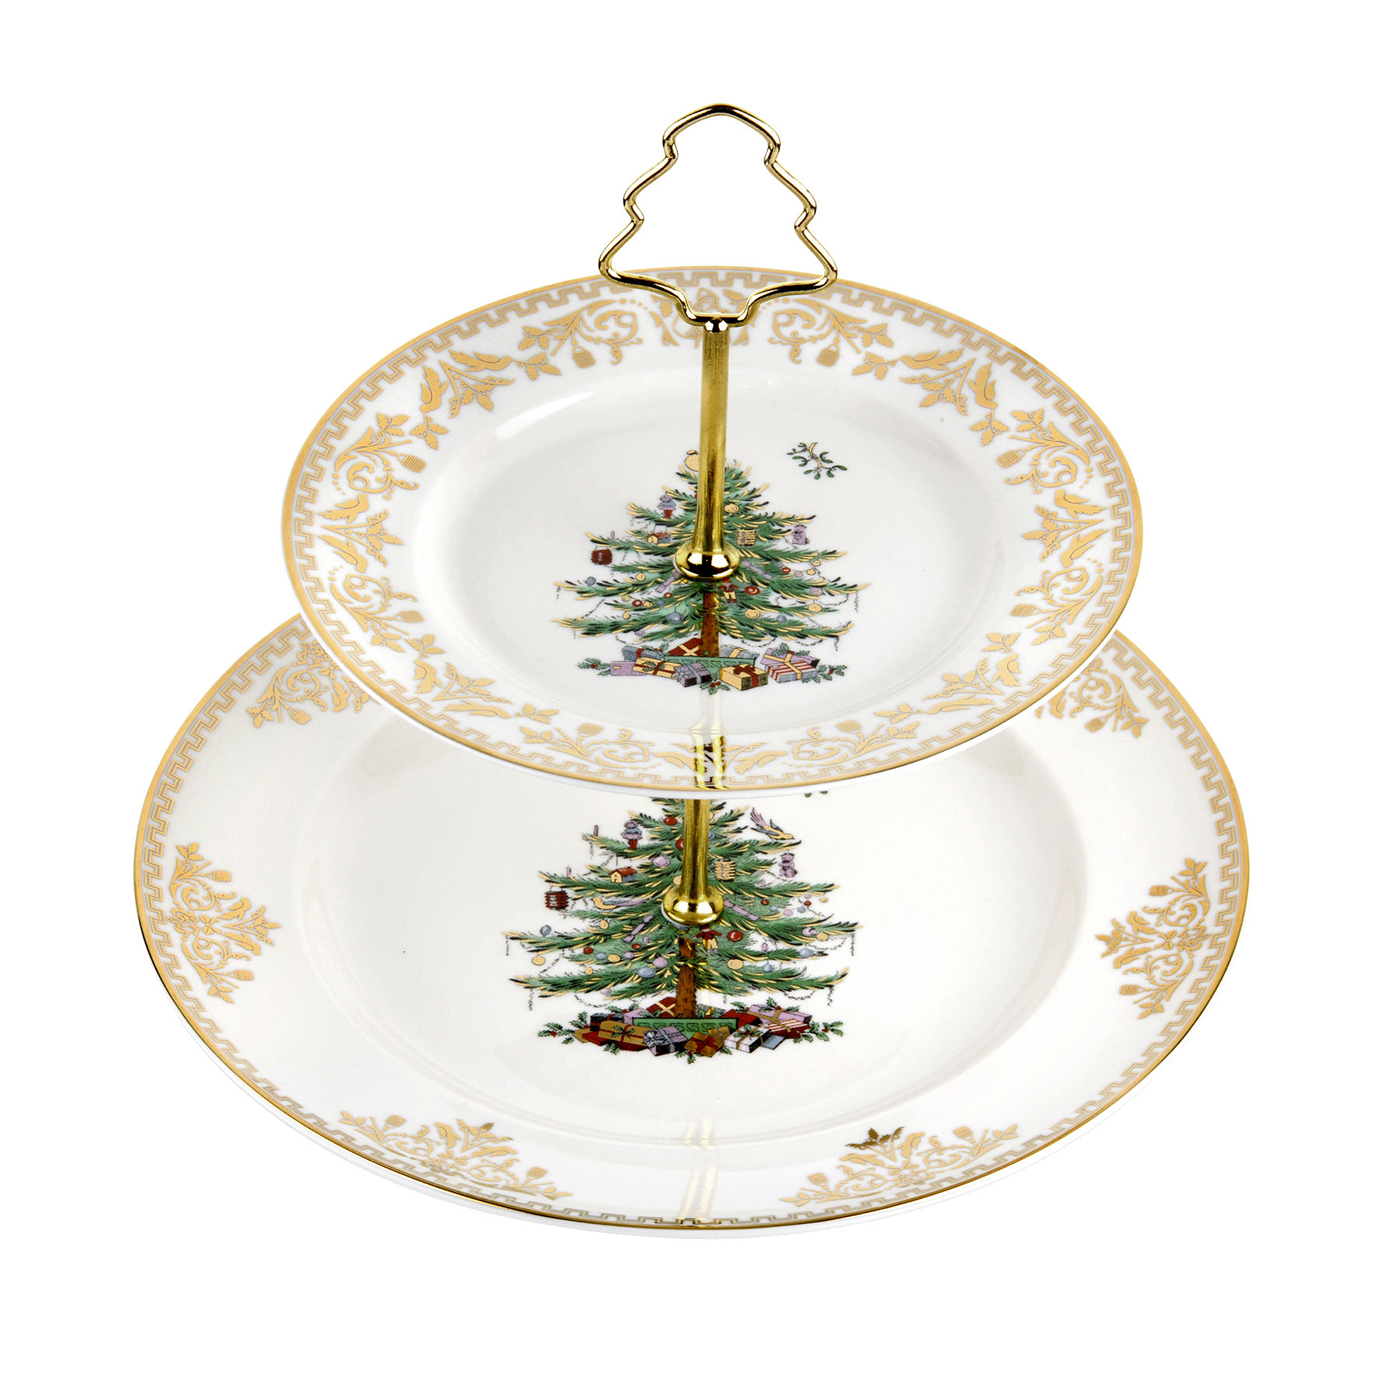 Spode Christmas Tree Candle Holder: Christmas Tree Gold 2-Tier Cake Stand By Spode